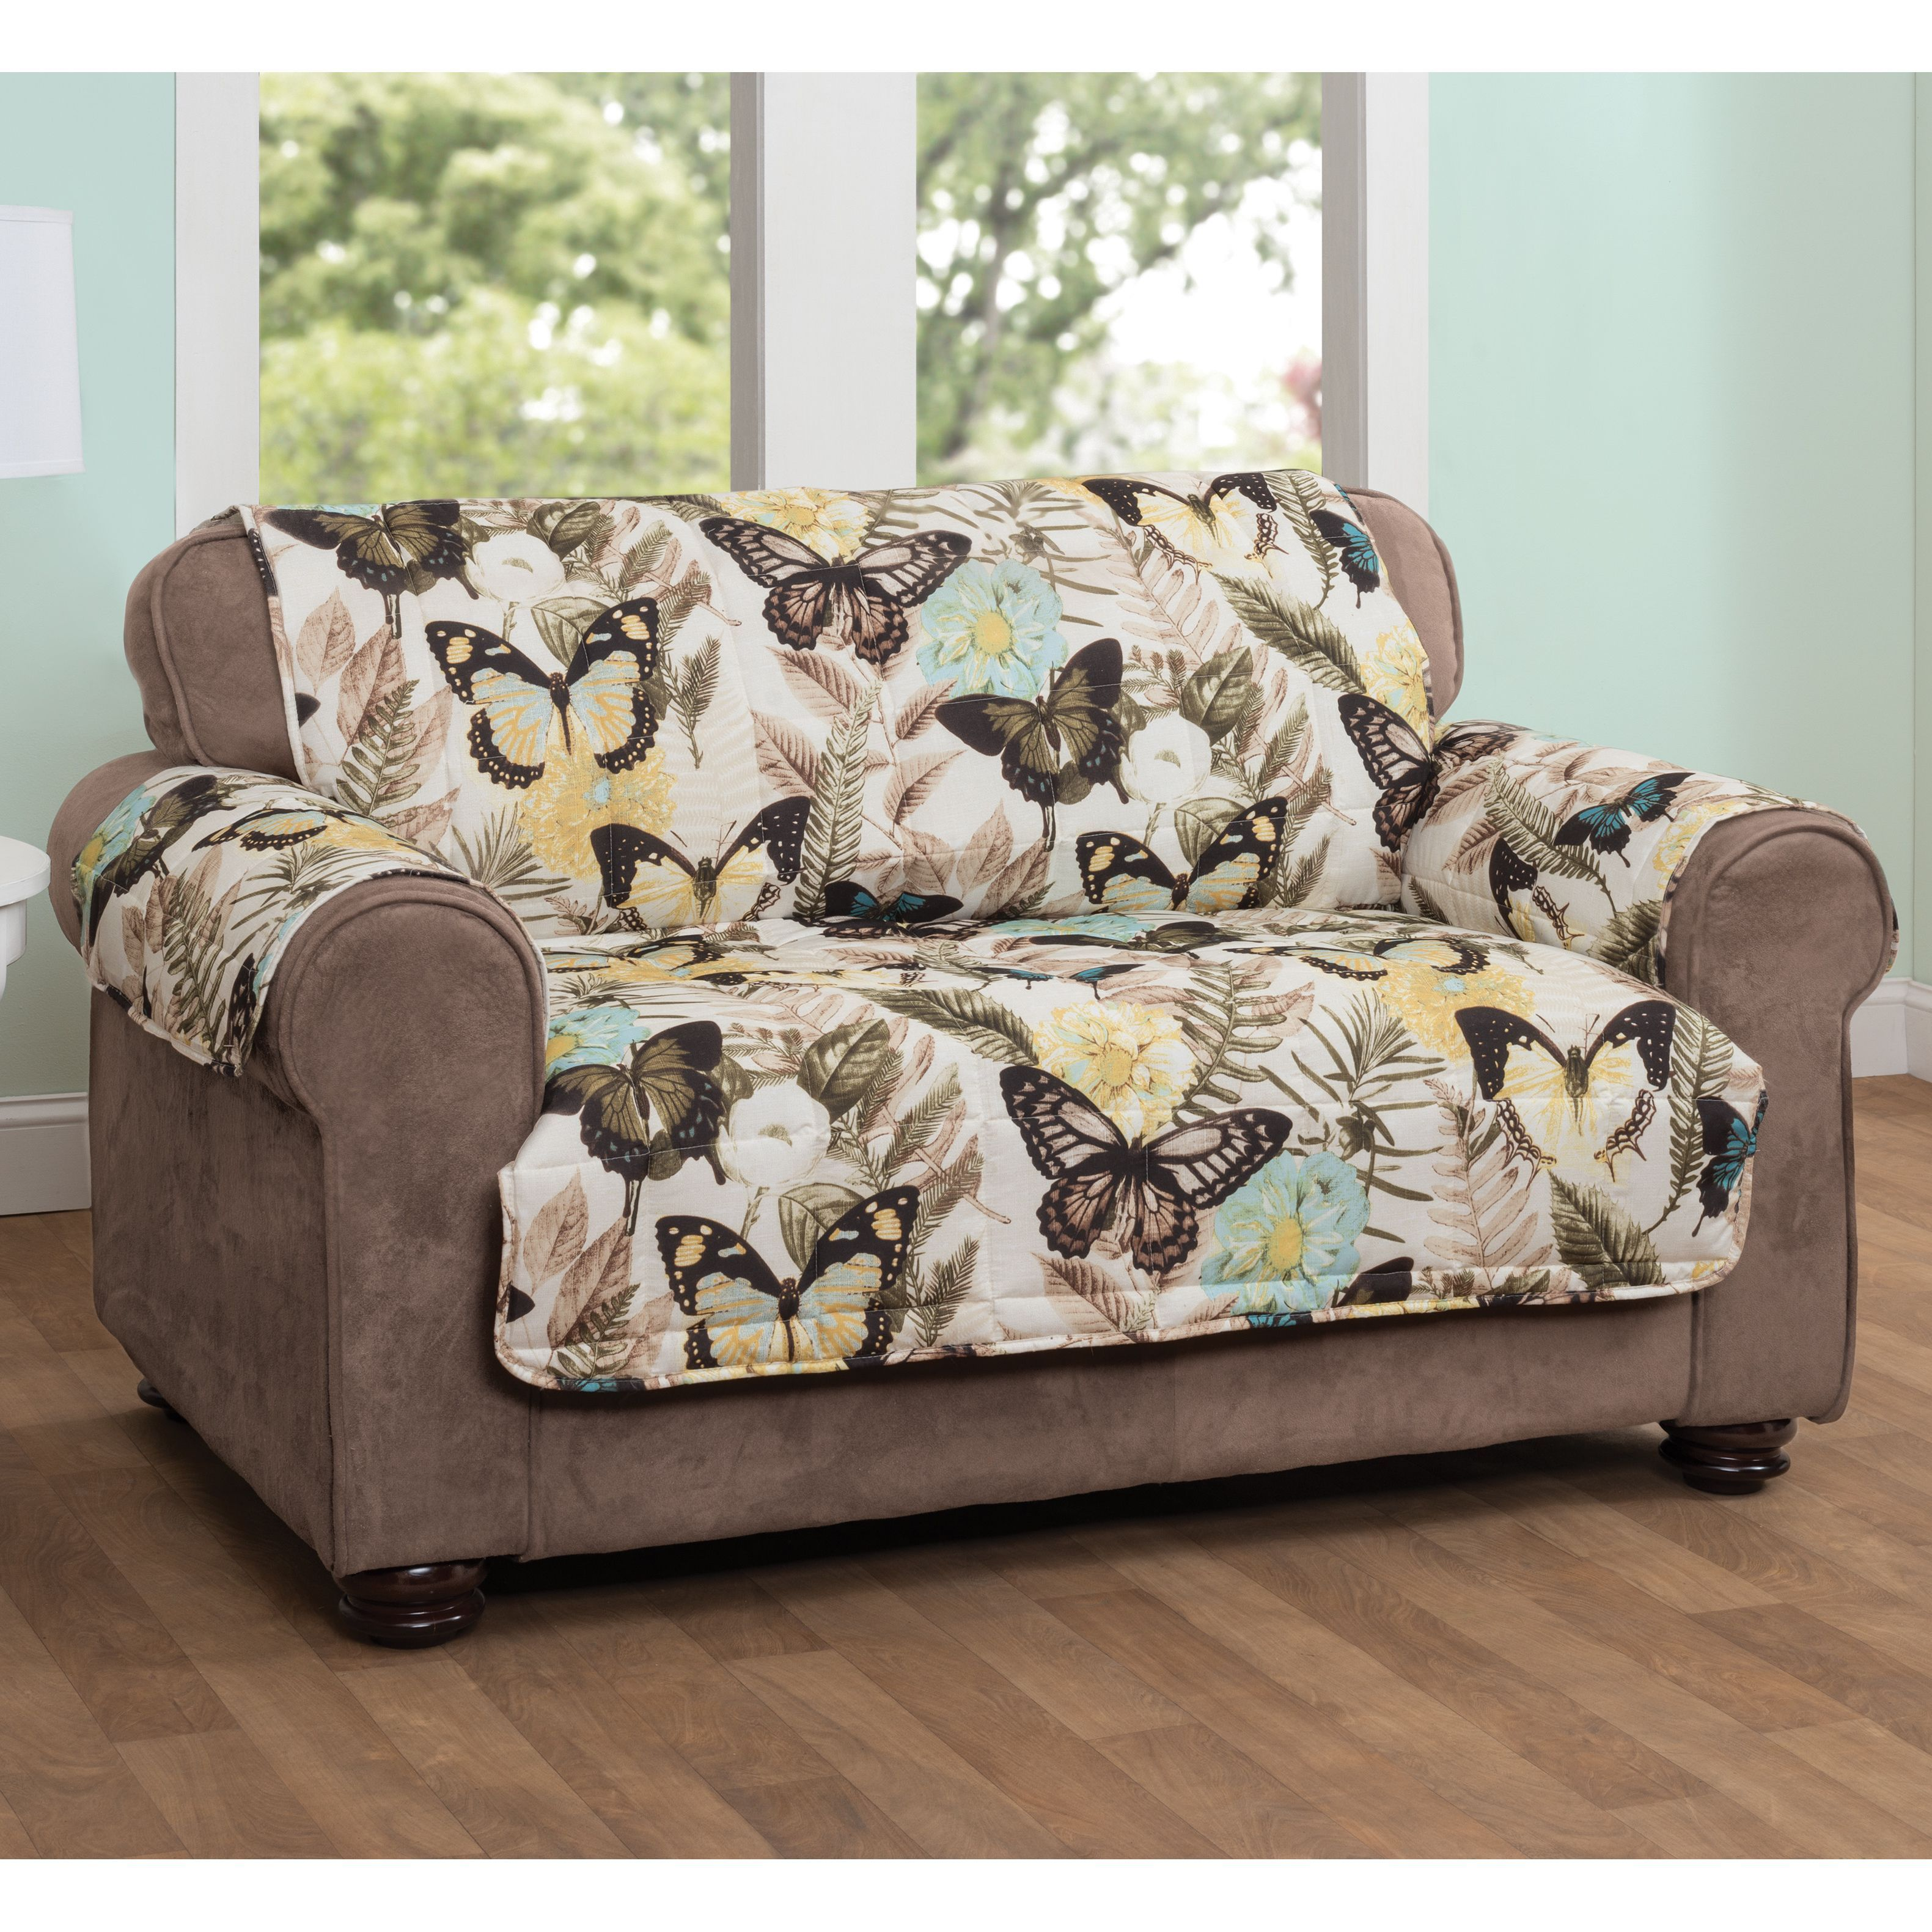 Innovative Textile Solutions Butterfly Sofa Protector Multi